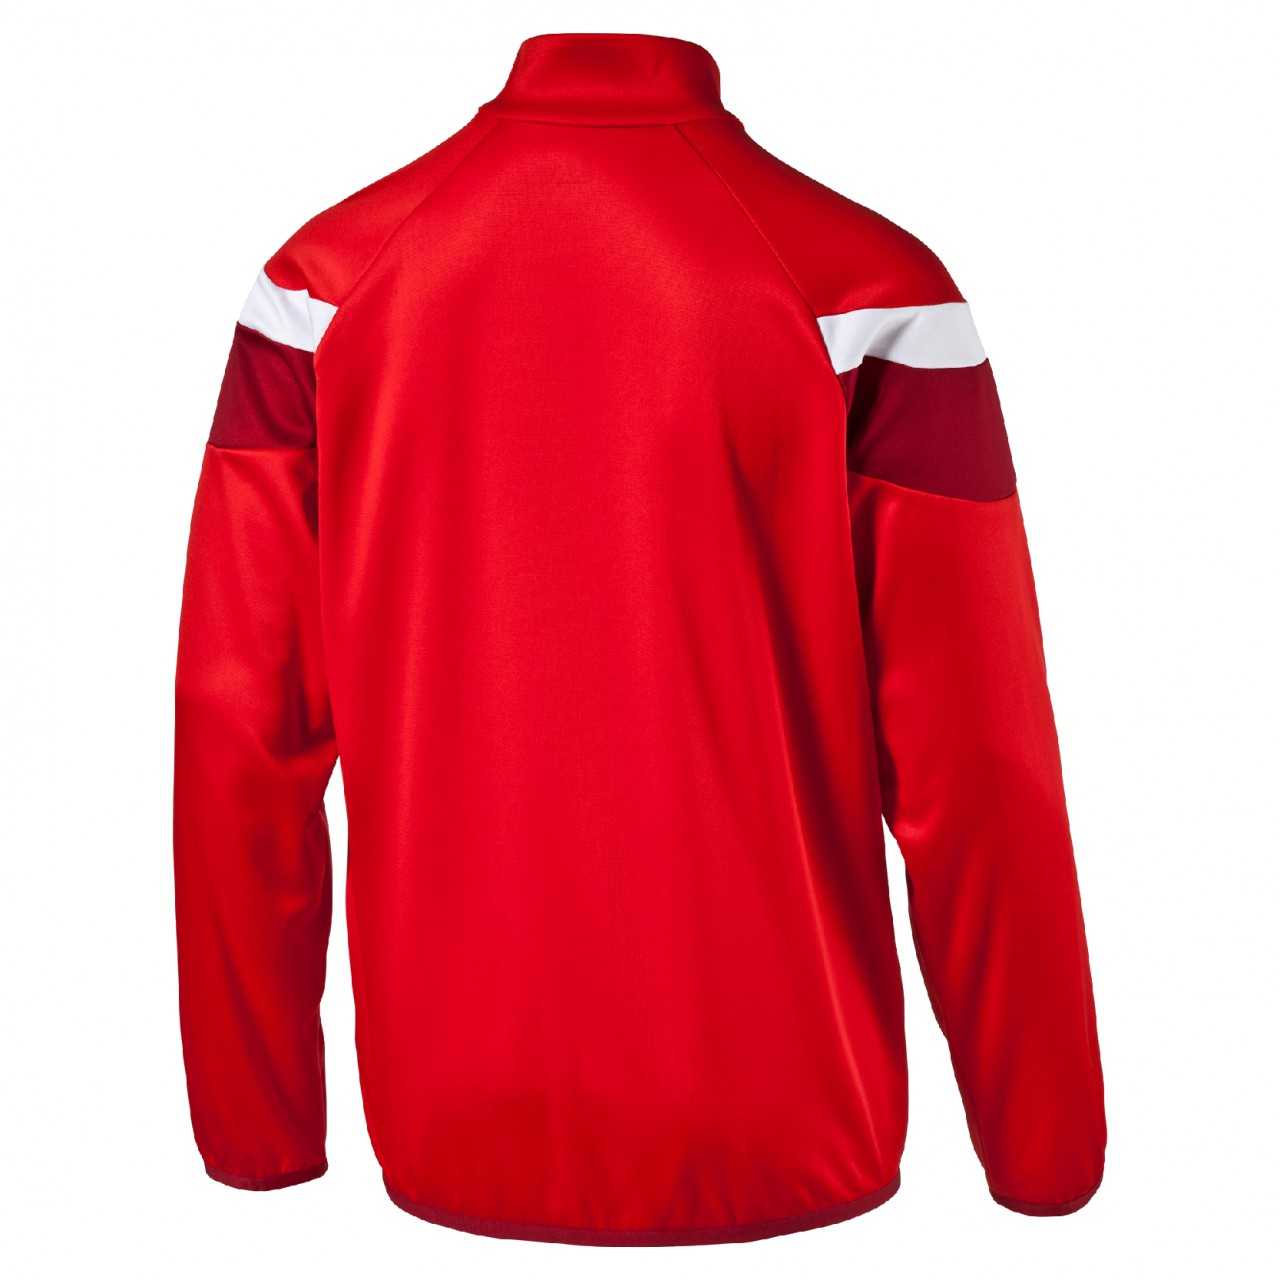 PUMA Spirit II 1/4 Zip Training Top